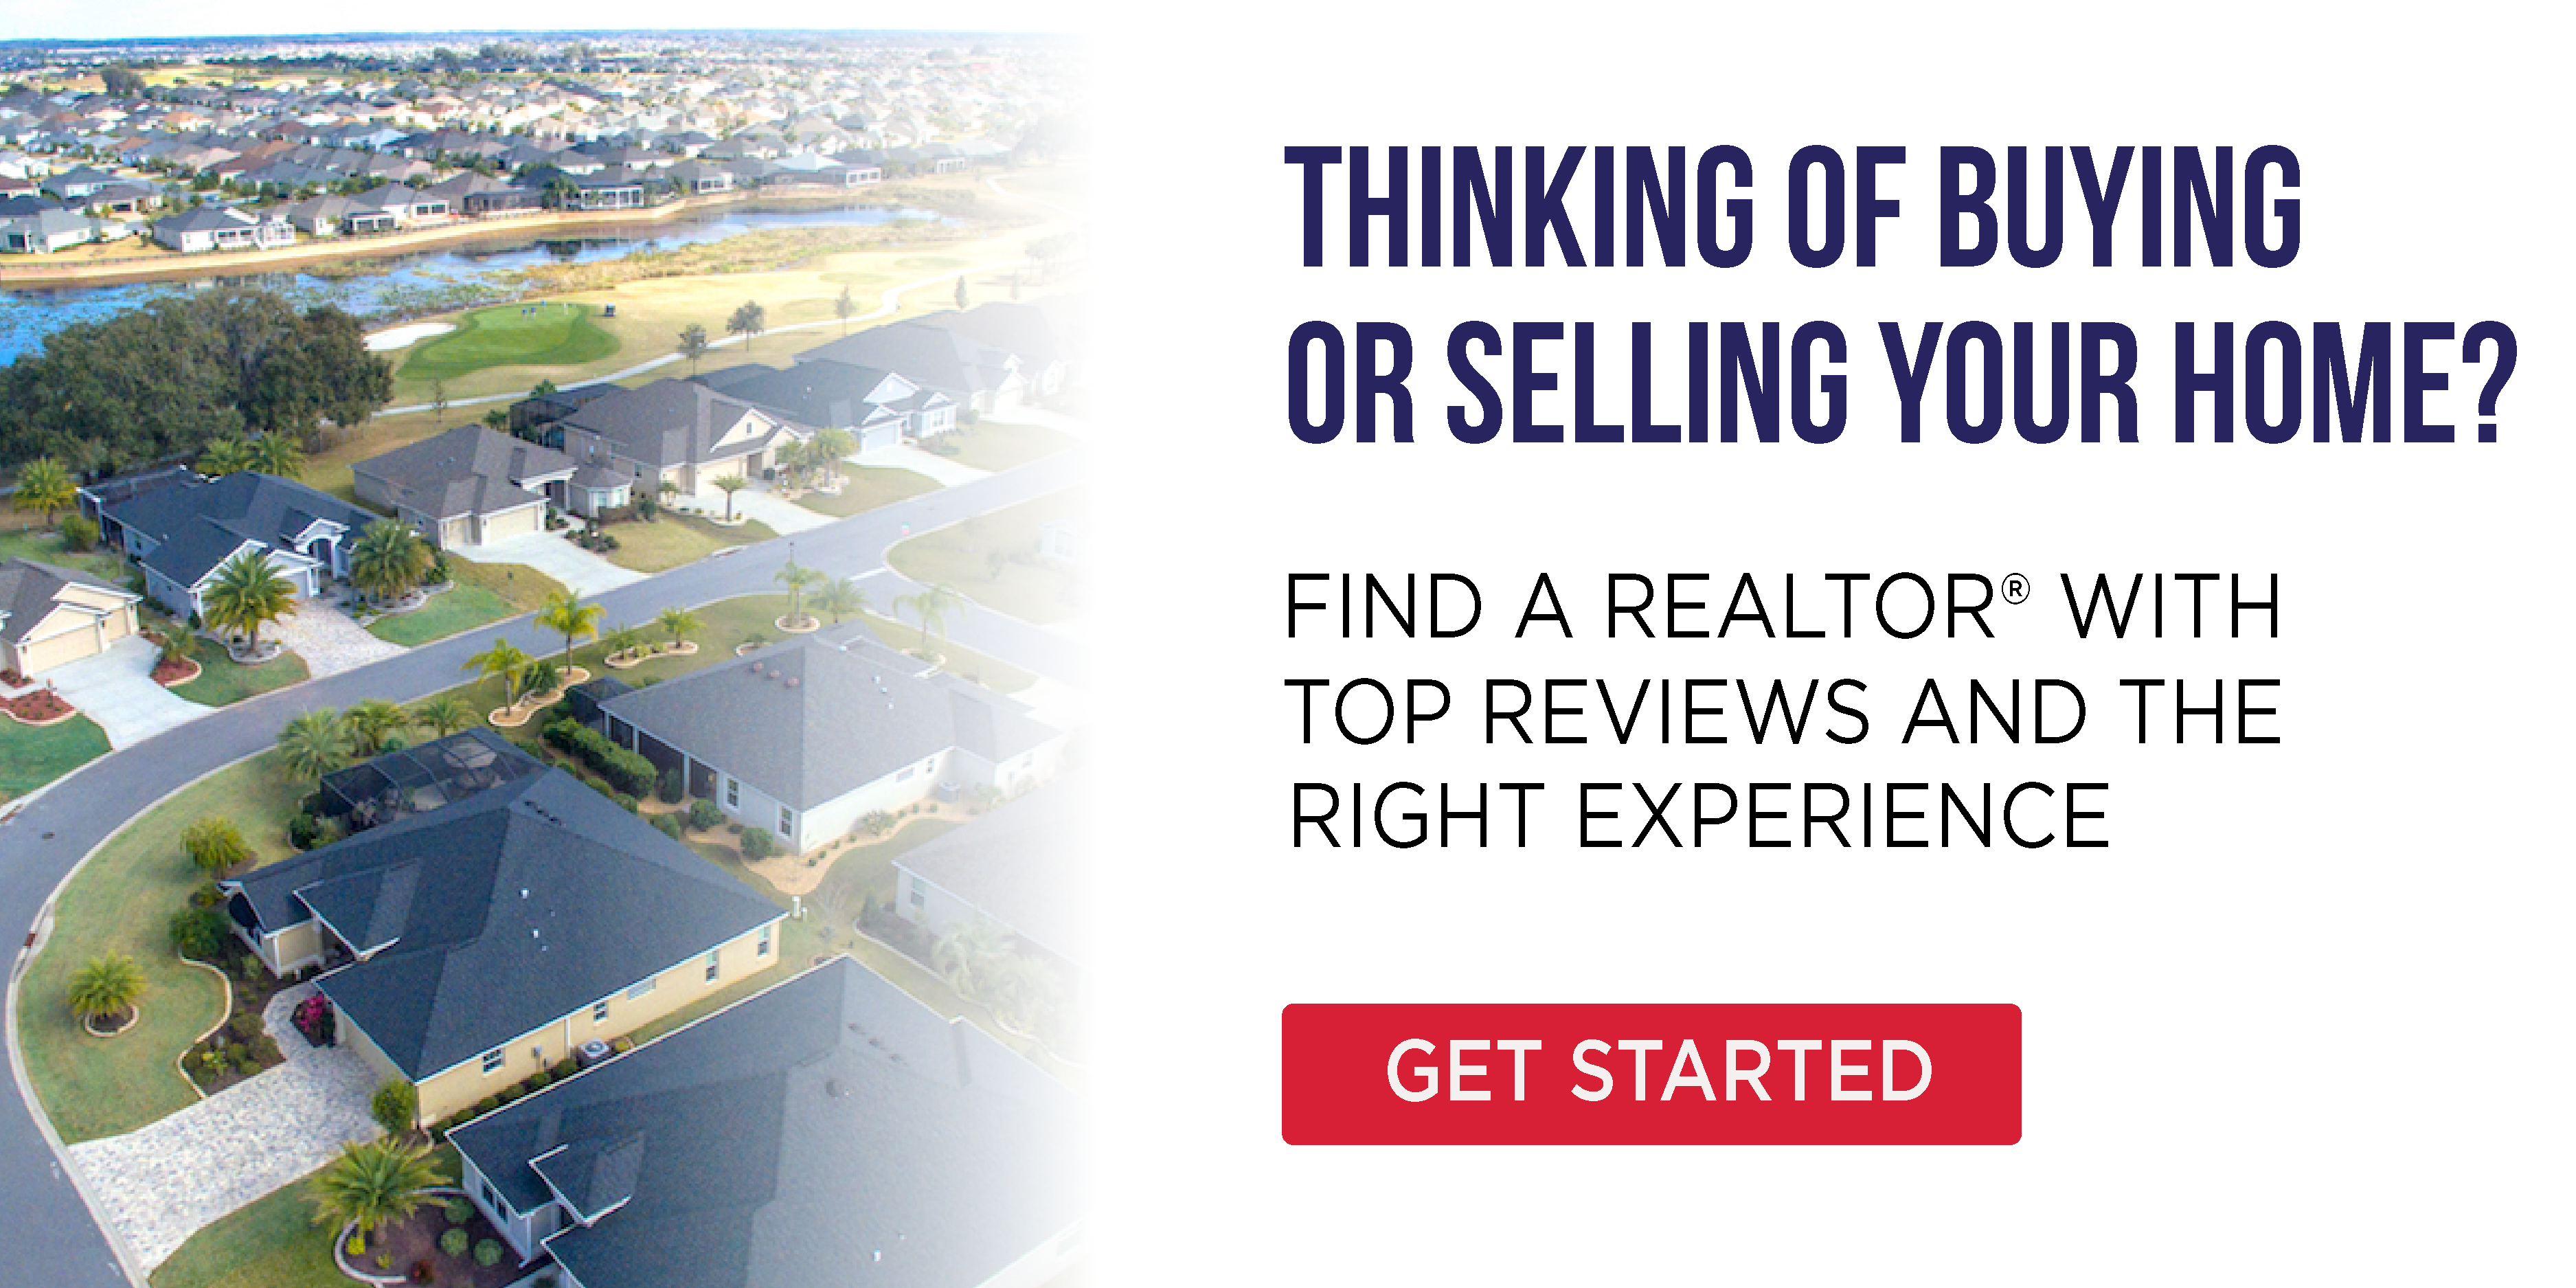 aerial neighrborhood cta graphic selling your home find a realtor